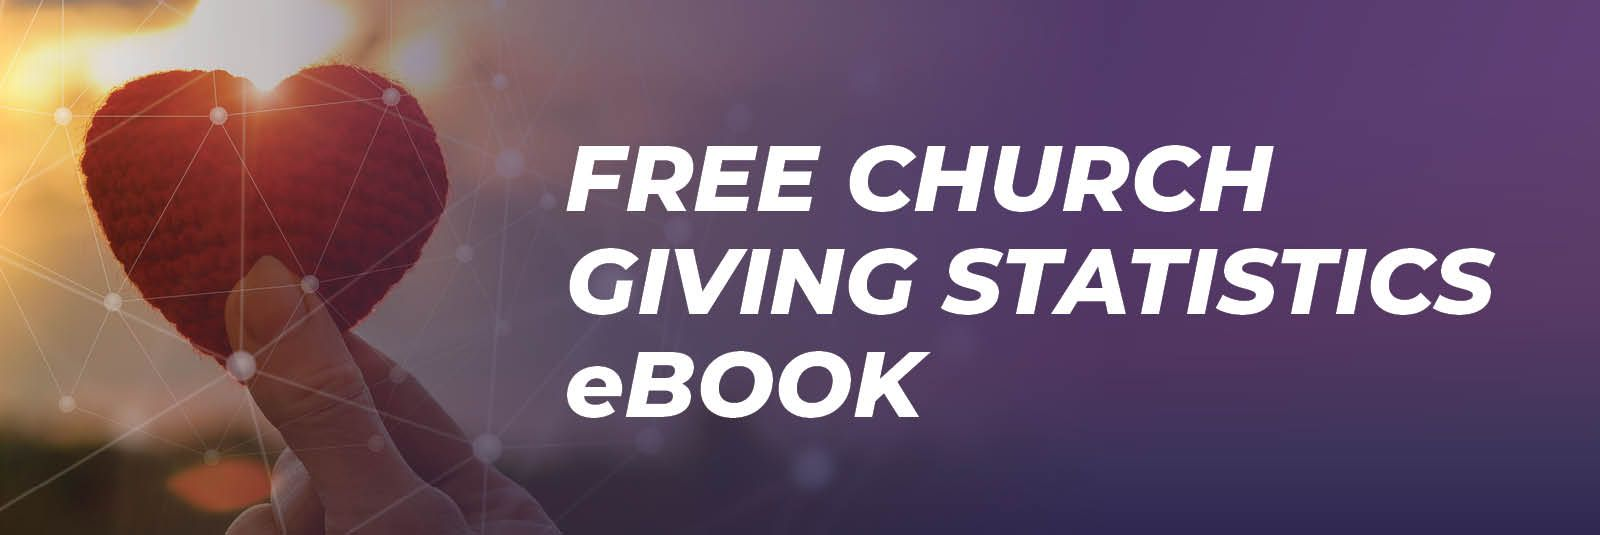 Free-Cgurch_giving-Stats-ebook-LP-Header-0420